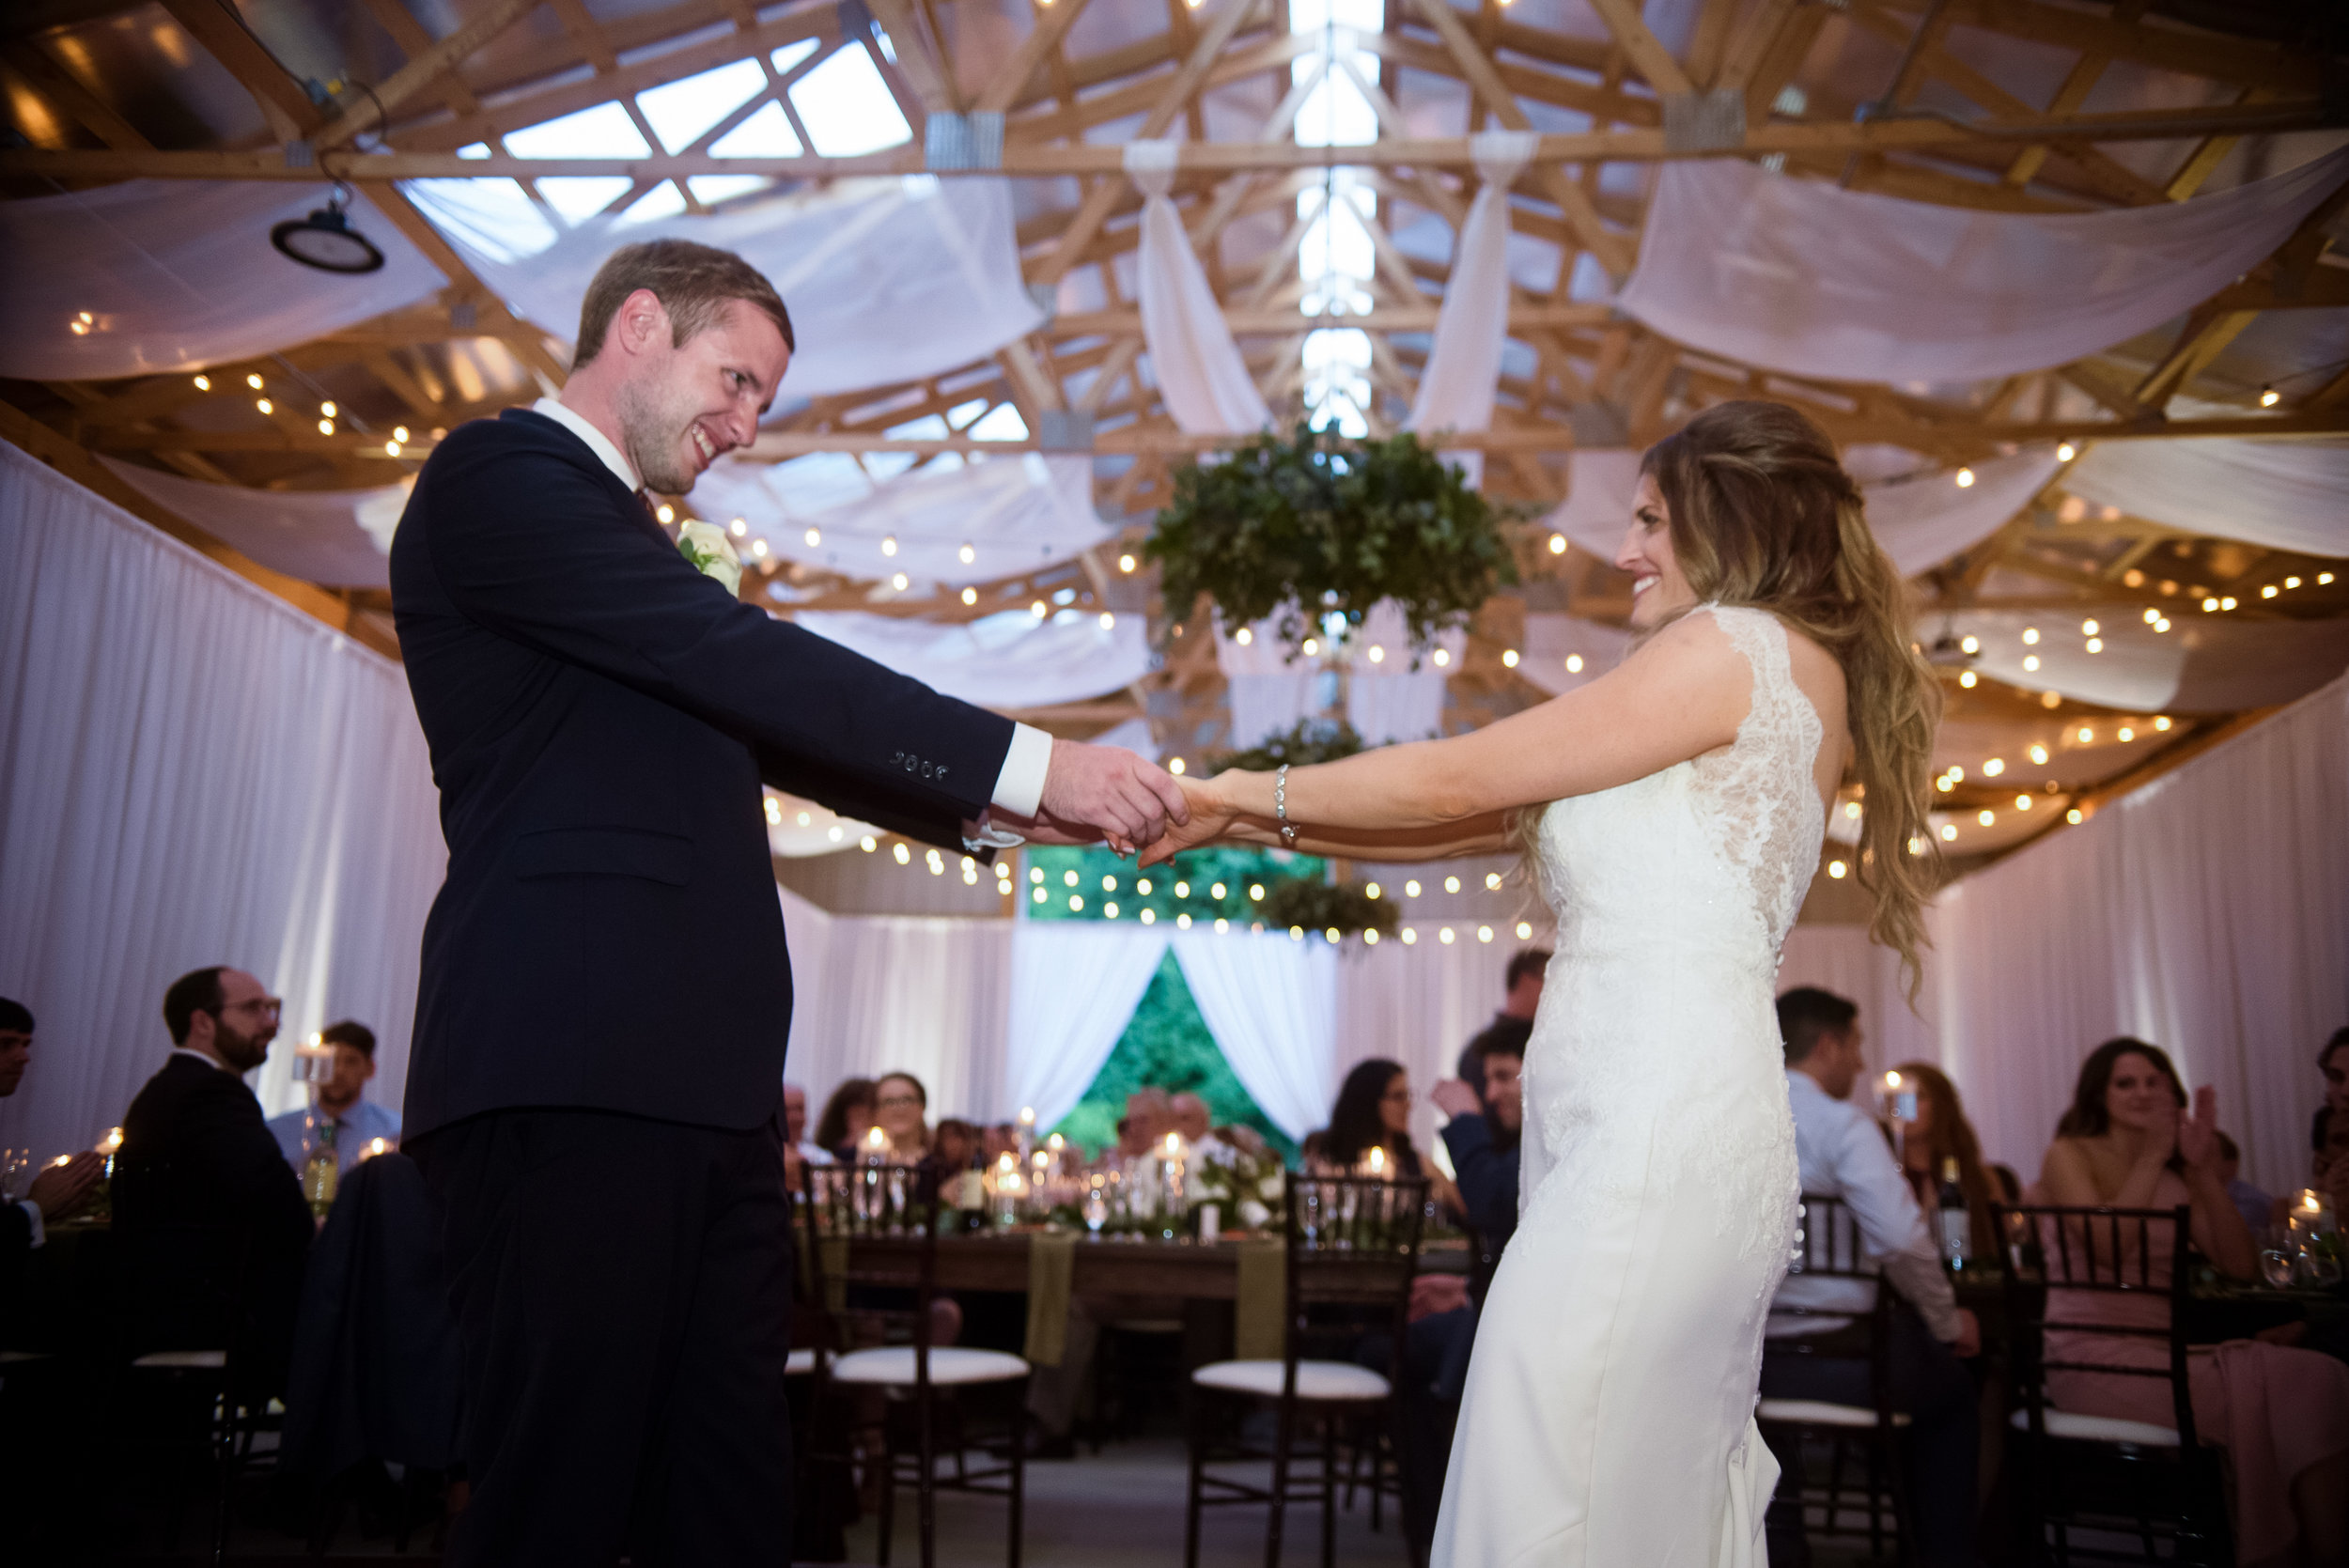 Bride and groom share first dance at Pittsburgh wedding planned by Exhale Events. Find more wedding inspiration at exhale-events.com!